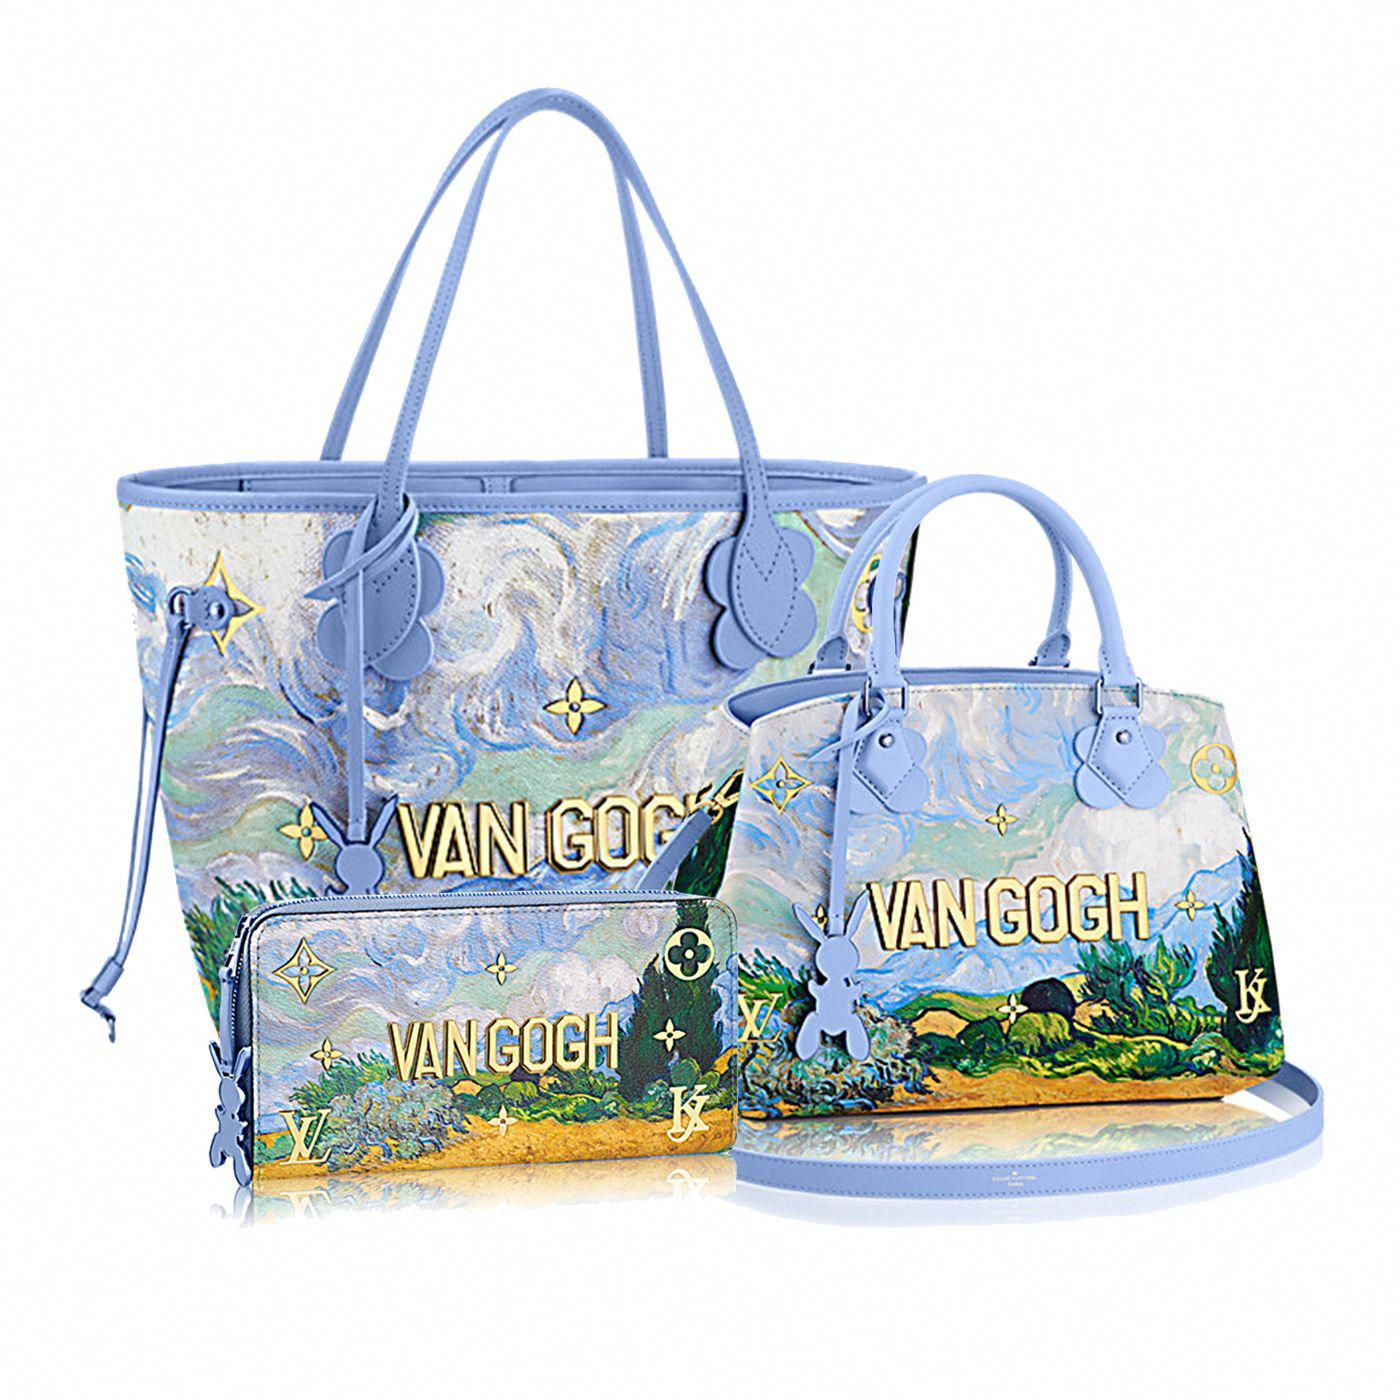 225a9c8870fd7 Louis Vuitton - Van Gogh -- SWOON! I m IN LOVE with this collection!   Louisvuittonhandbags